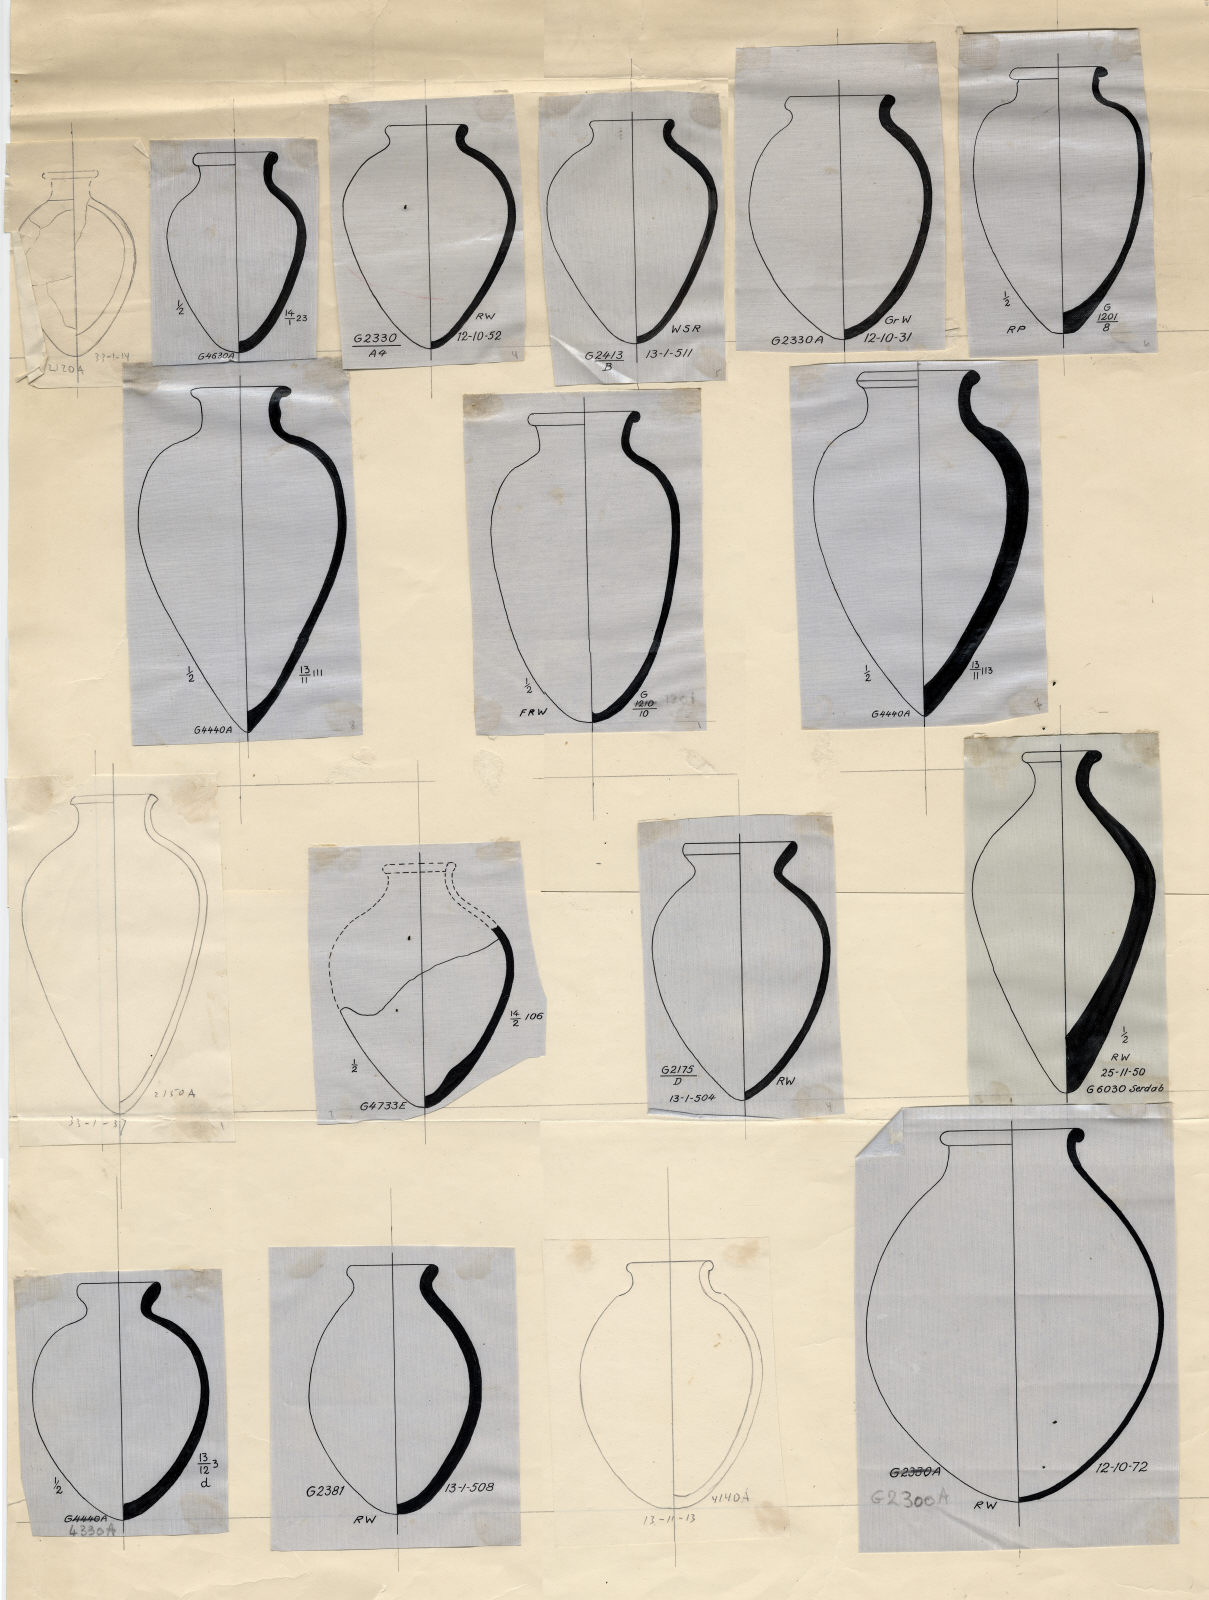 Drawings: Pottery jars from G 1201, G 1210, G 2120, G 2150, G 2175, G 2381, G 2413, G 4140, G 4330, G 4440, G 4630, G 4733, G 5190, G 5380, G 6030